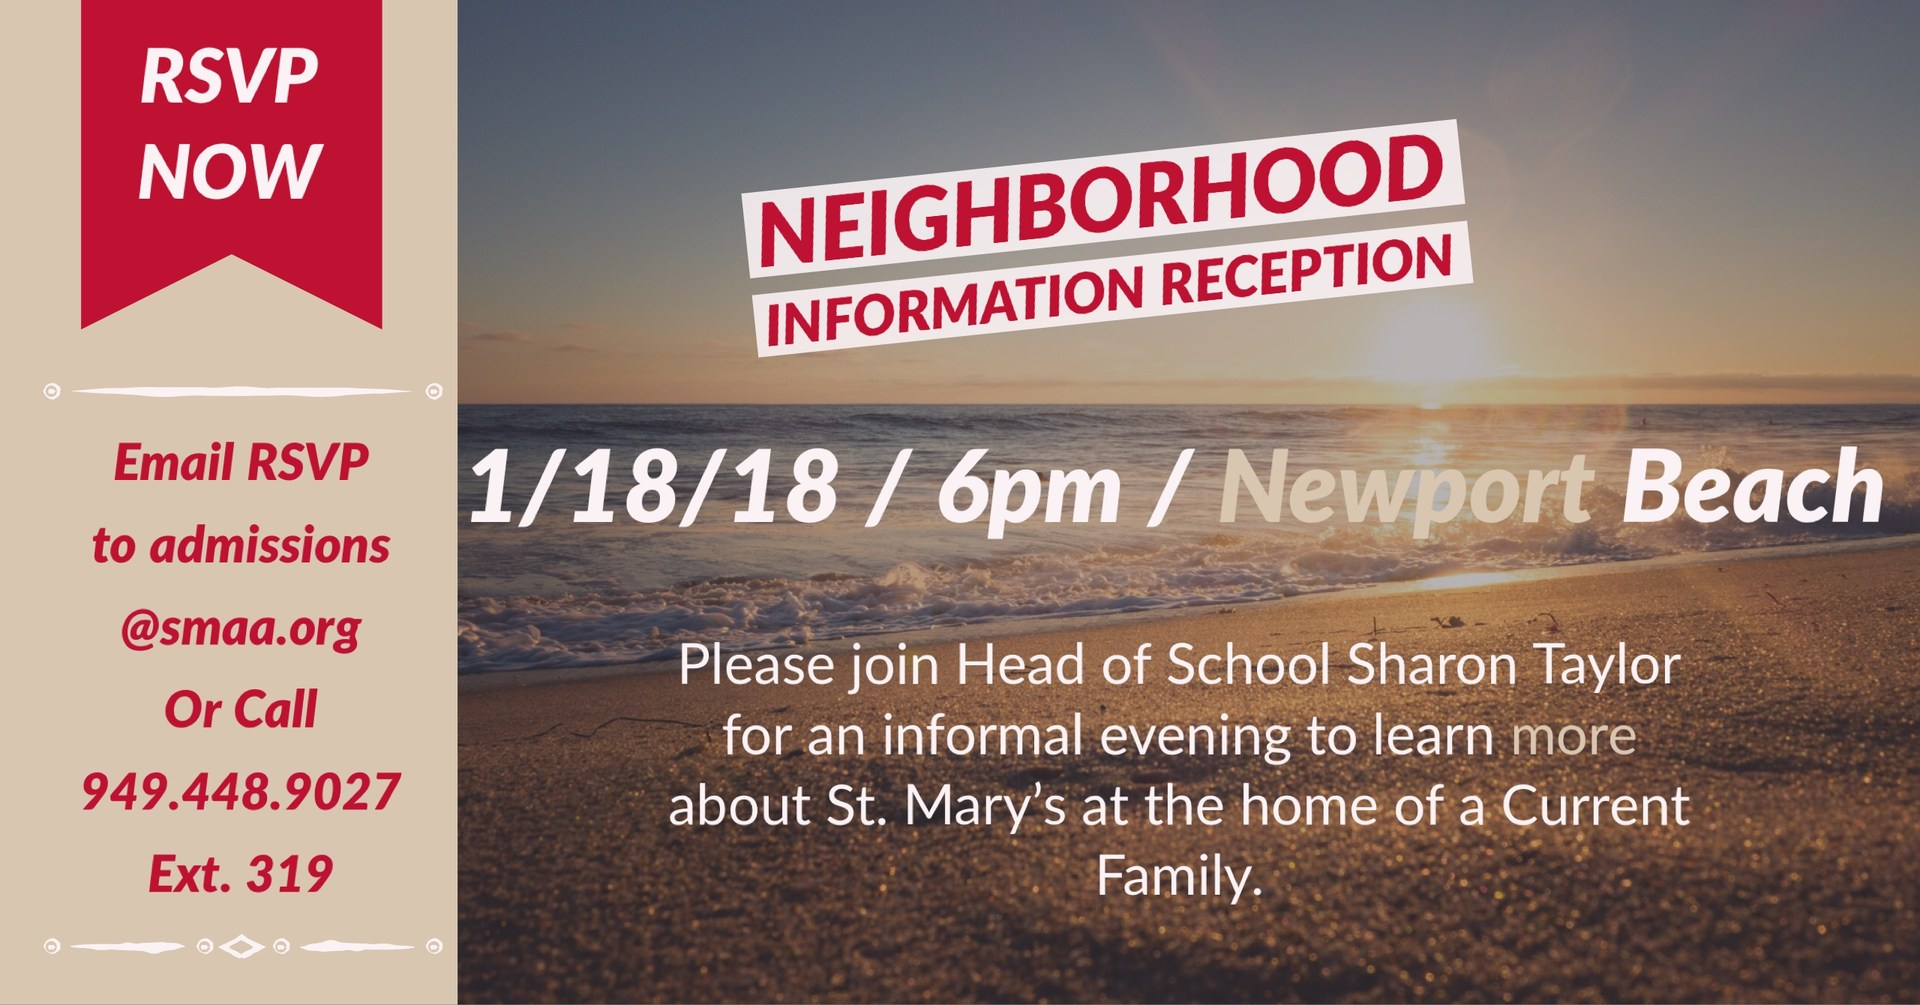 Neighbohood Information Reception ad with Newport Beach sunset photo